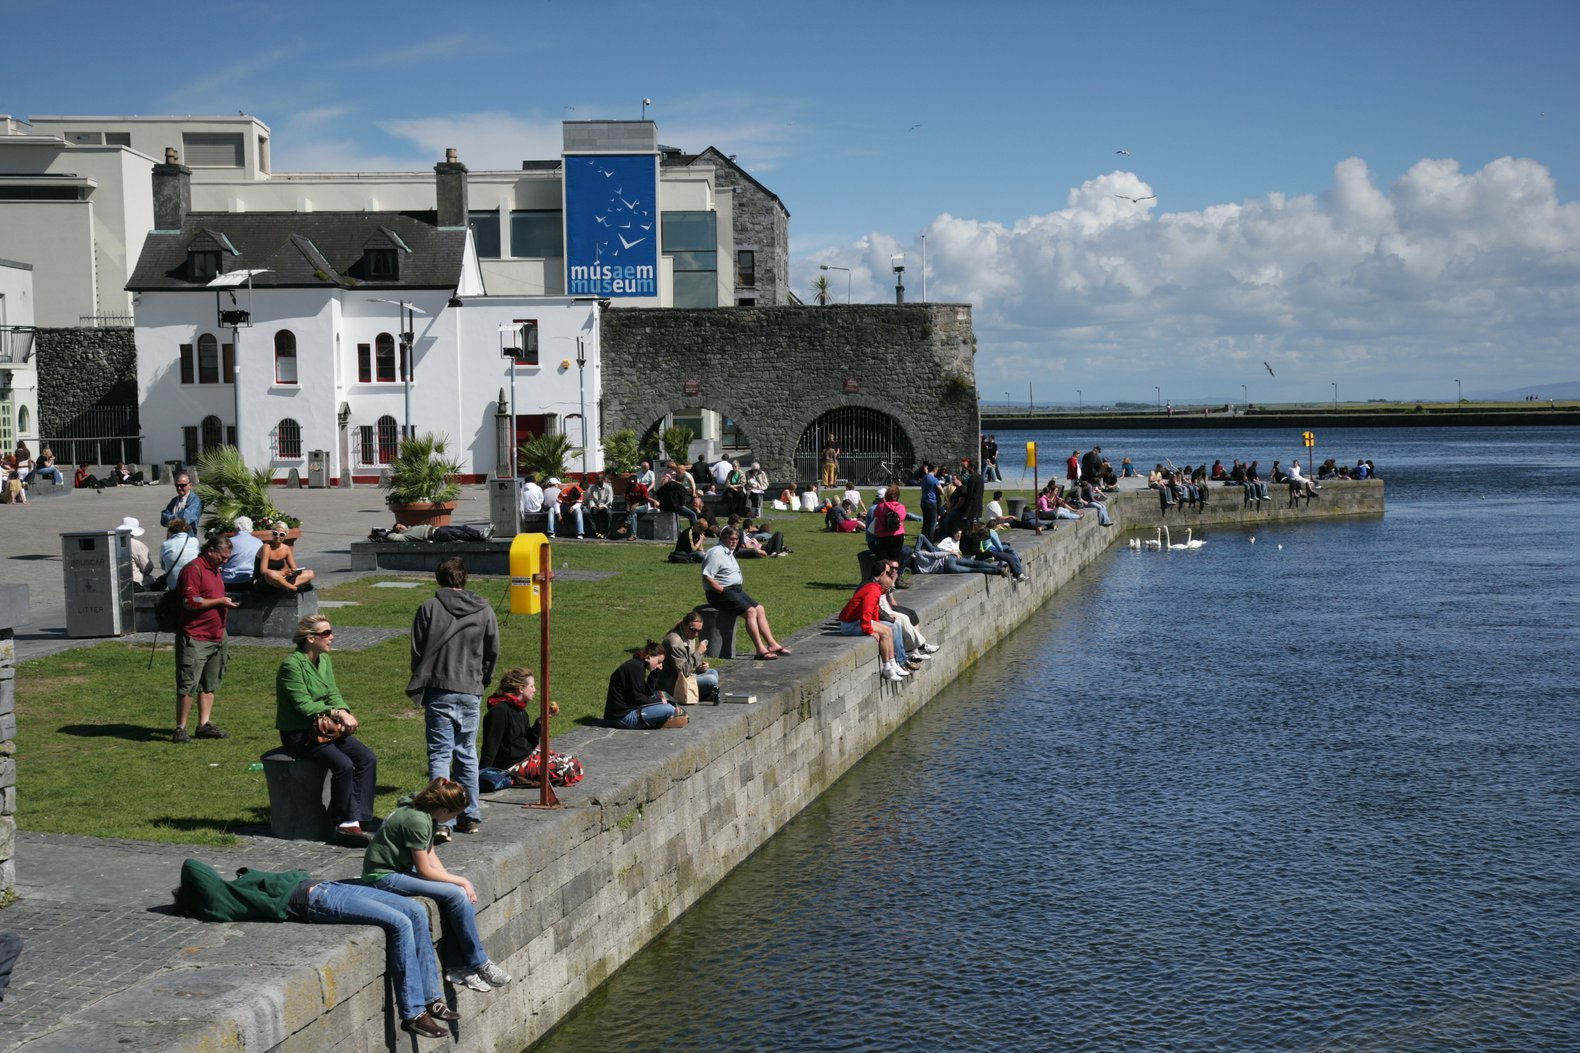 Galway vs Dublin / Whats on in Galway